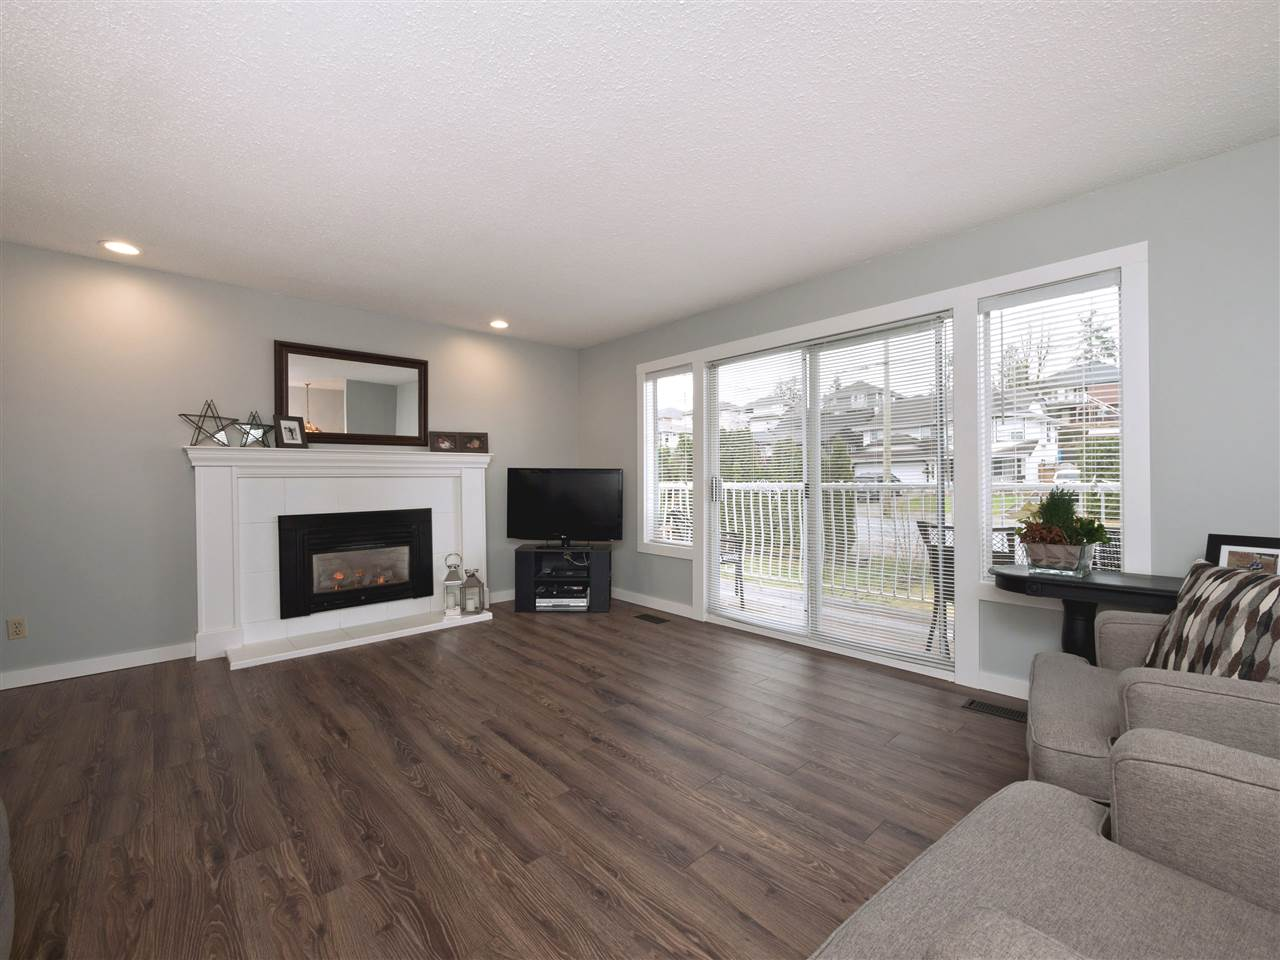 Photo 8: Photos: 33131 CHERRY Avenue in Mission: Mission BC House for sale : MLS® # R2236875